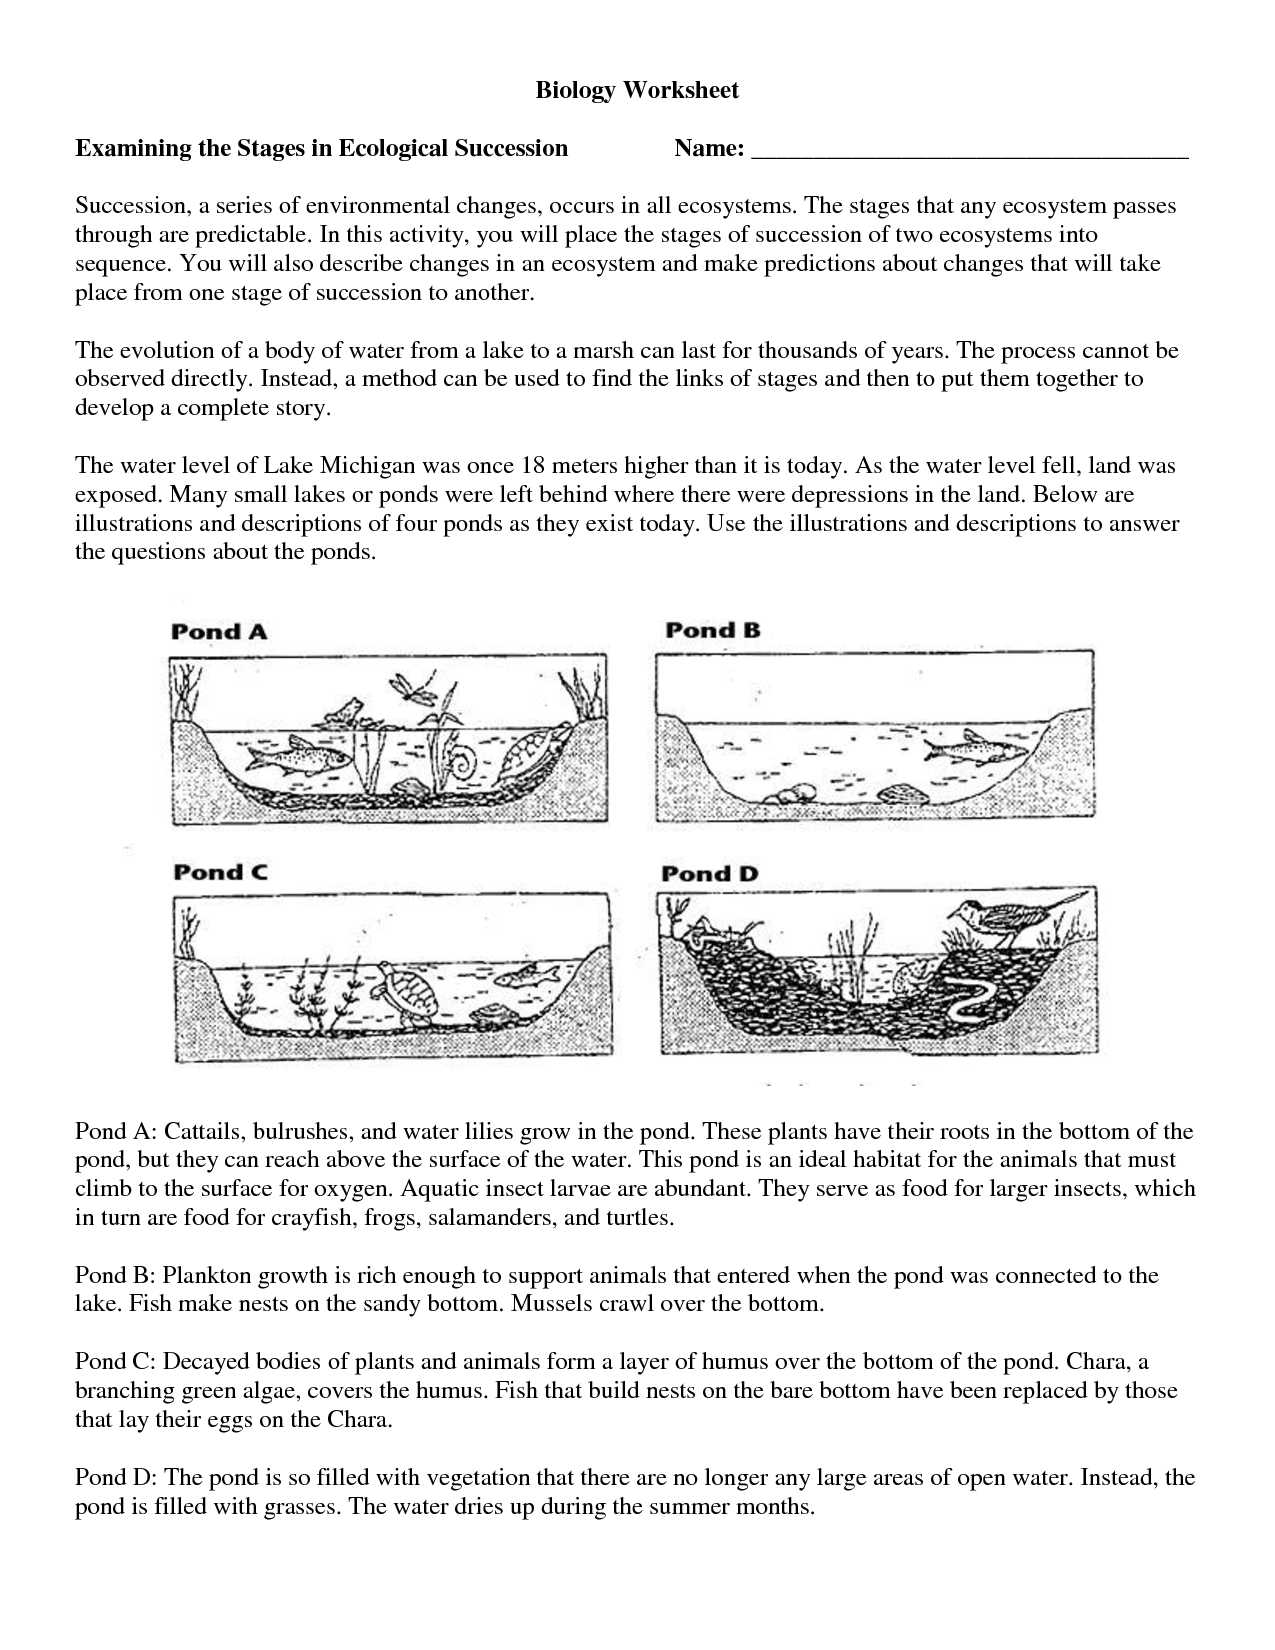 Biology Worksheet Flu